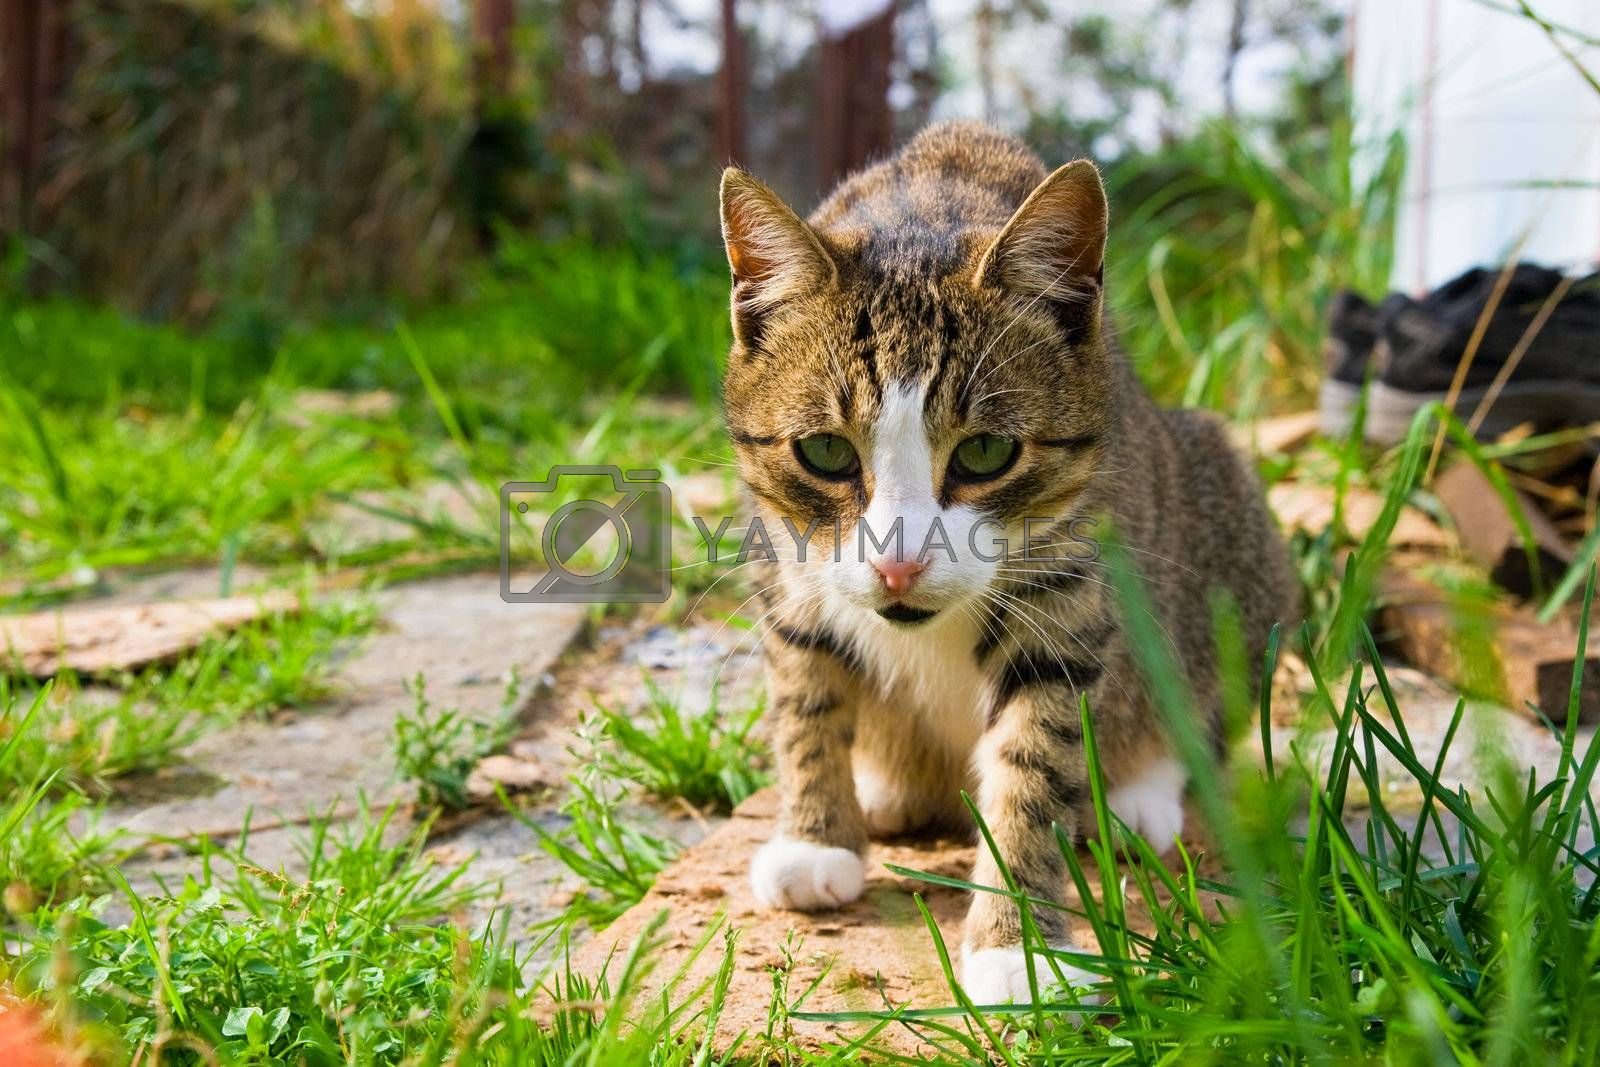 Royalty free image of Cat in the grass by seawhisper